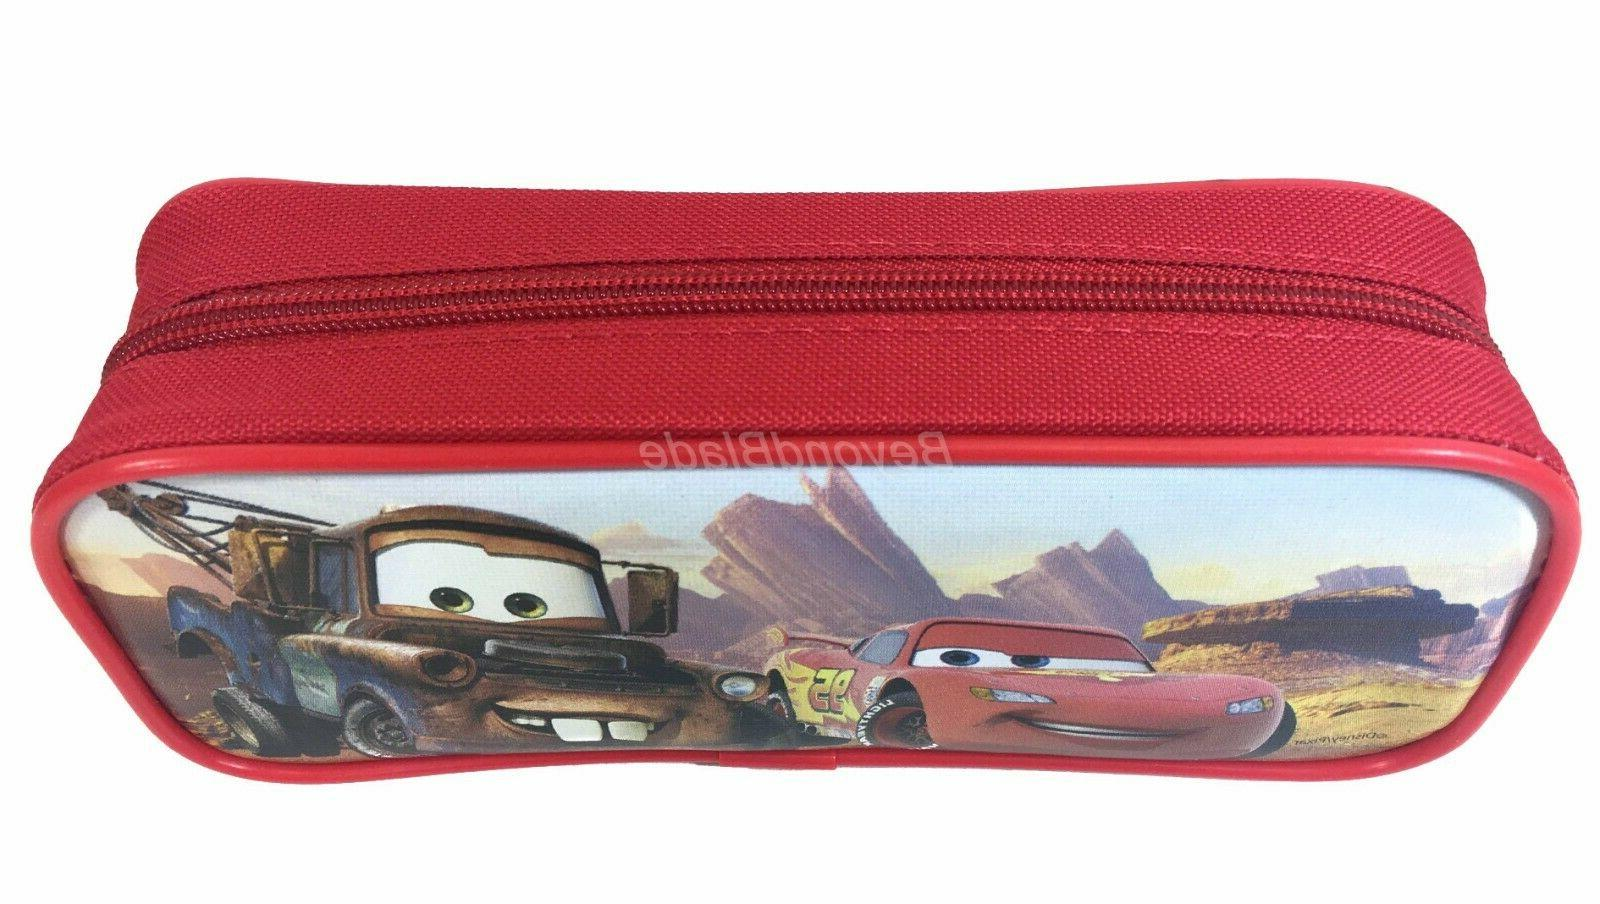 Disney Red Pencil Pouch Zippered Authentic Bag